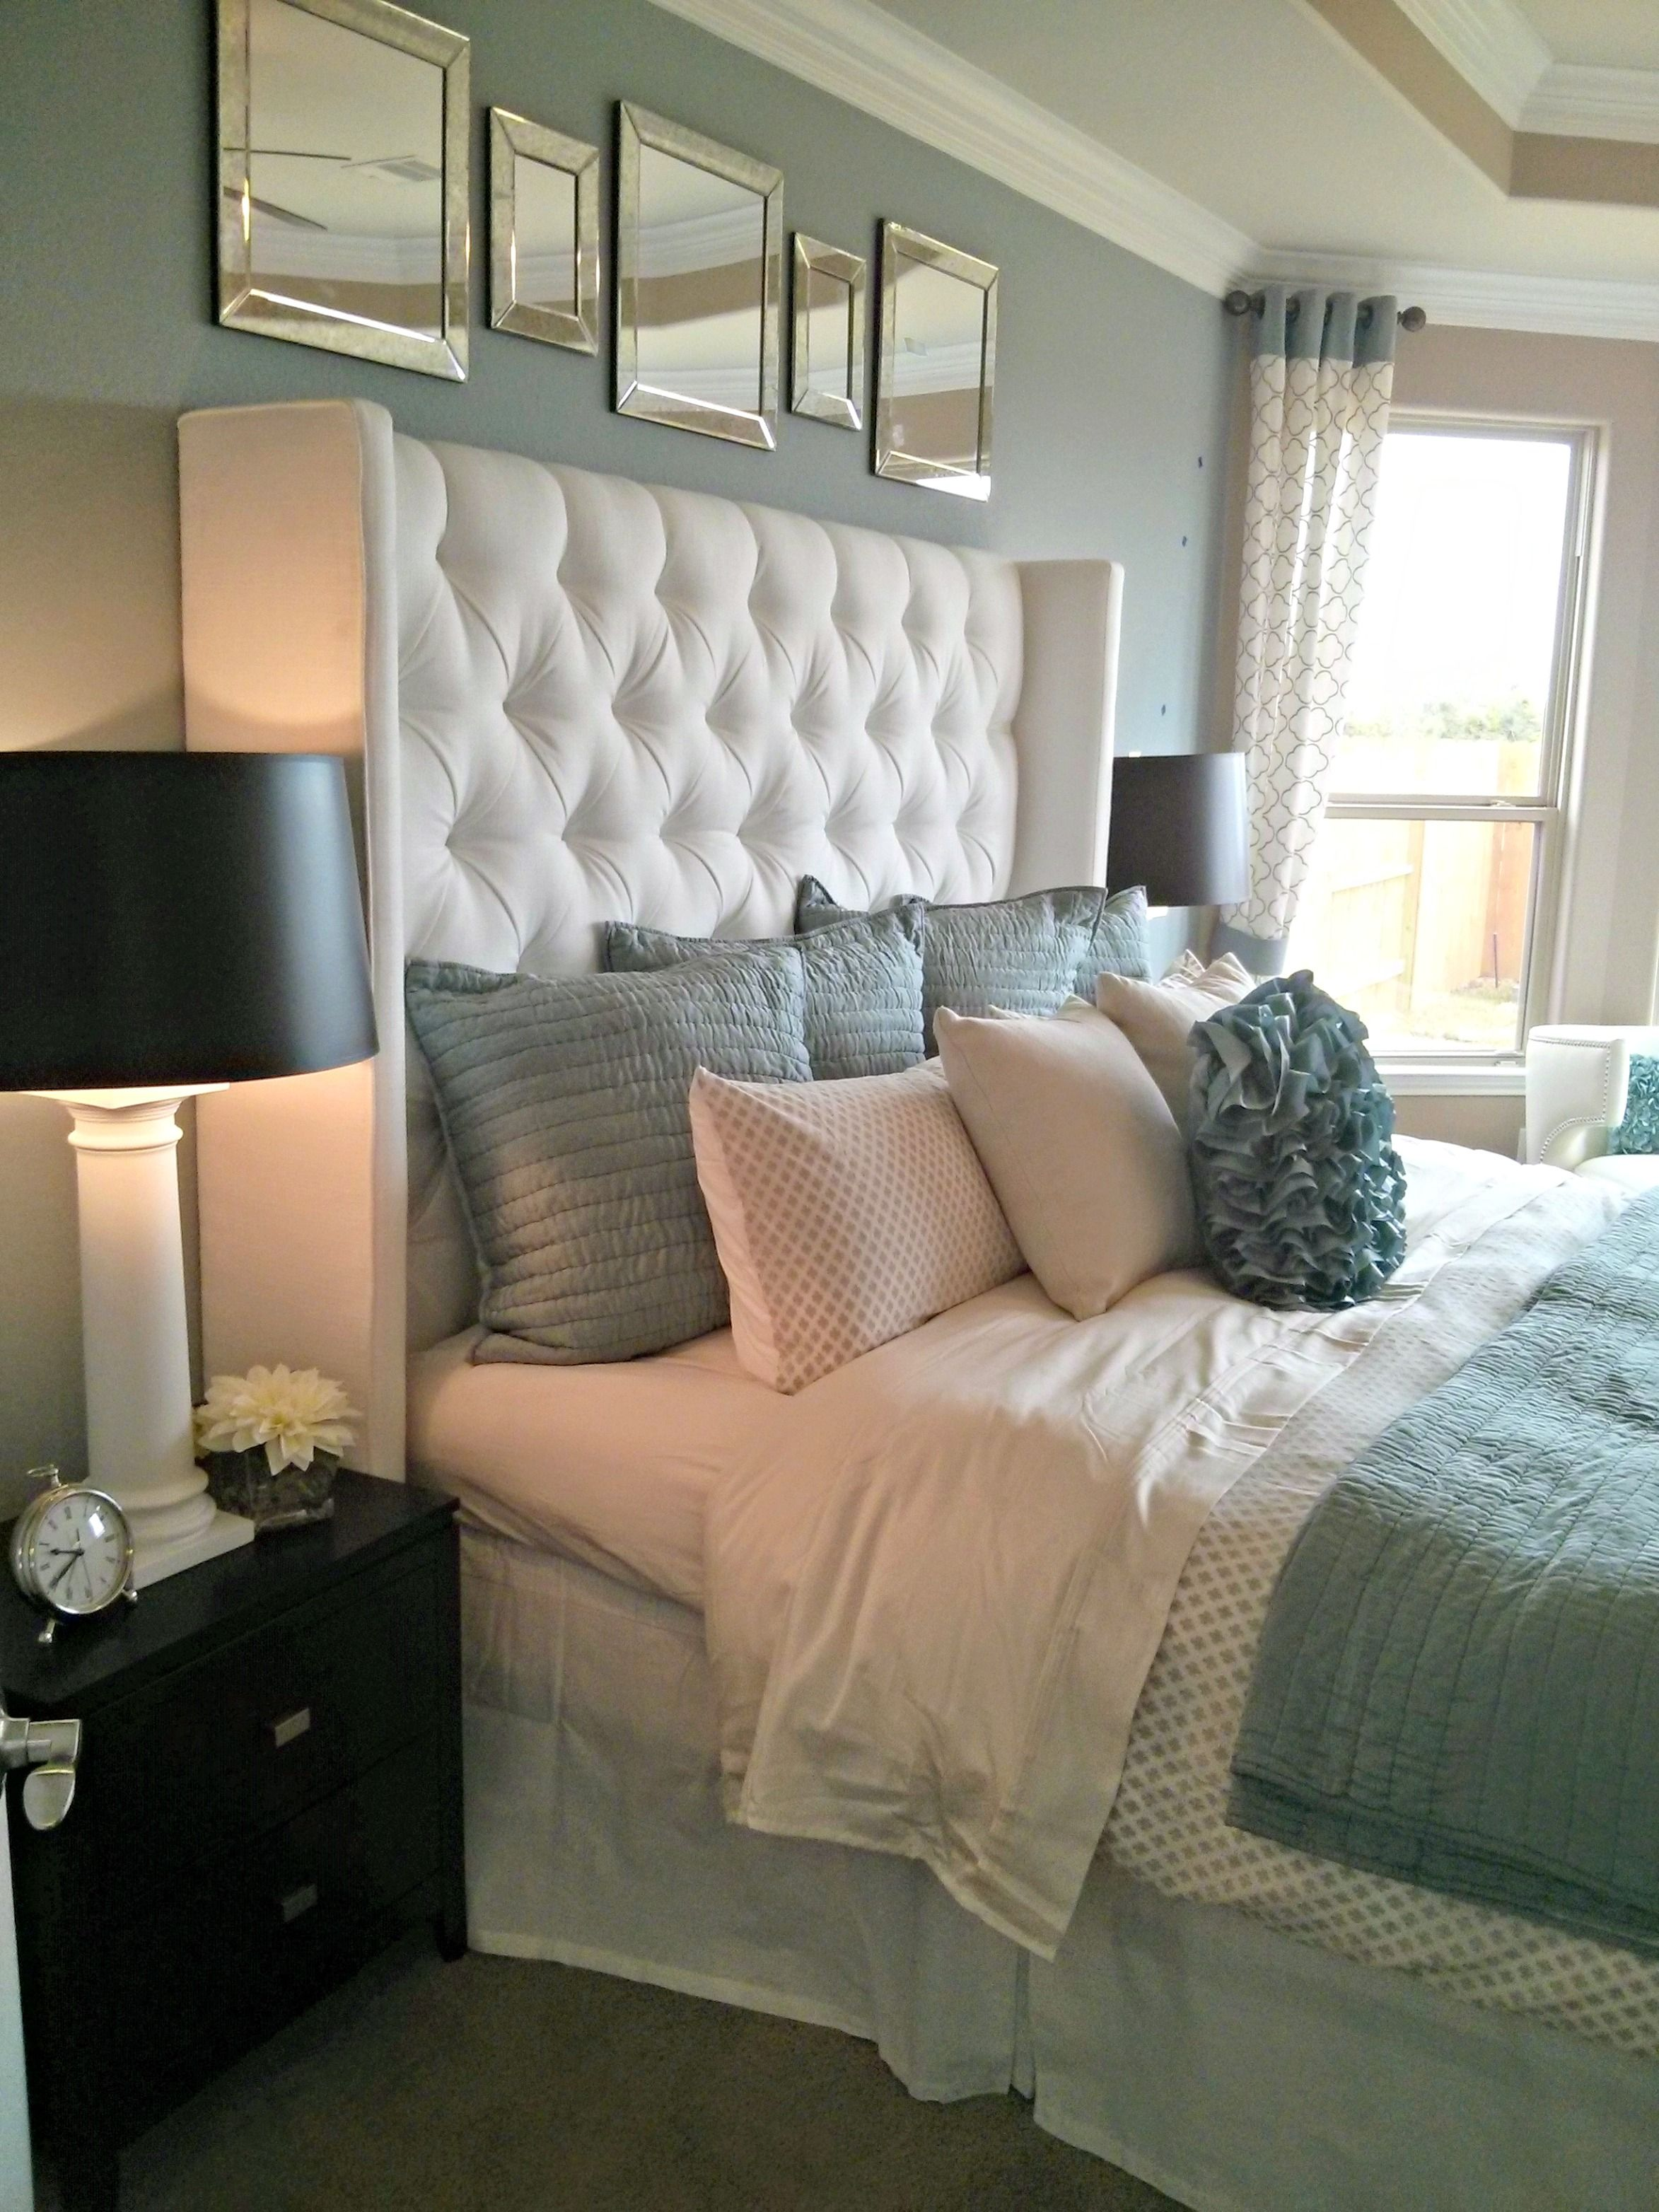 Master bedroom decorating ideas gray  What I Learned from a Model Home Master Bedroom  Ideas for the